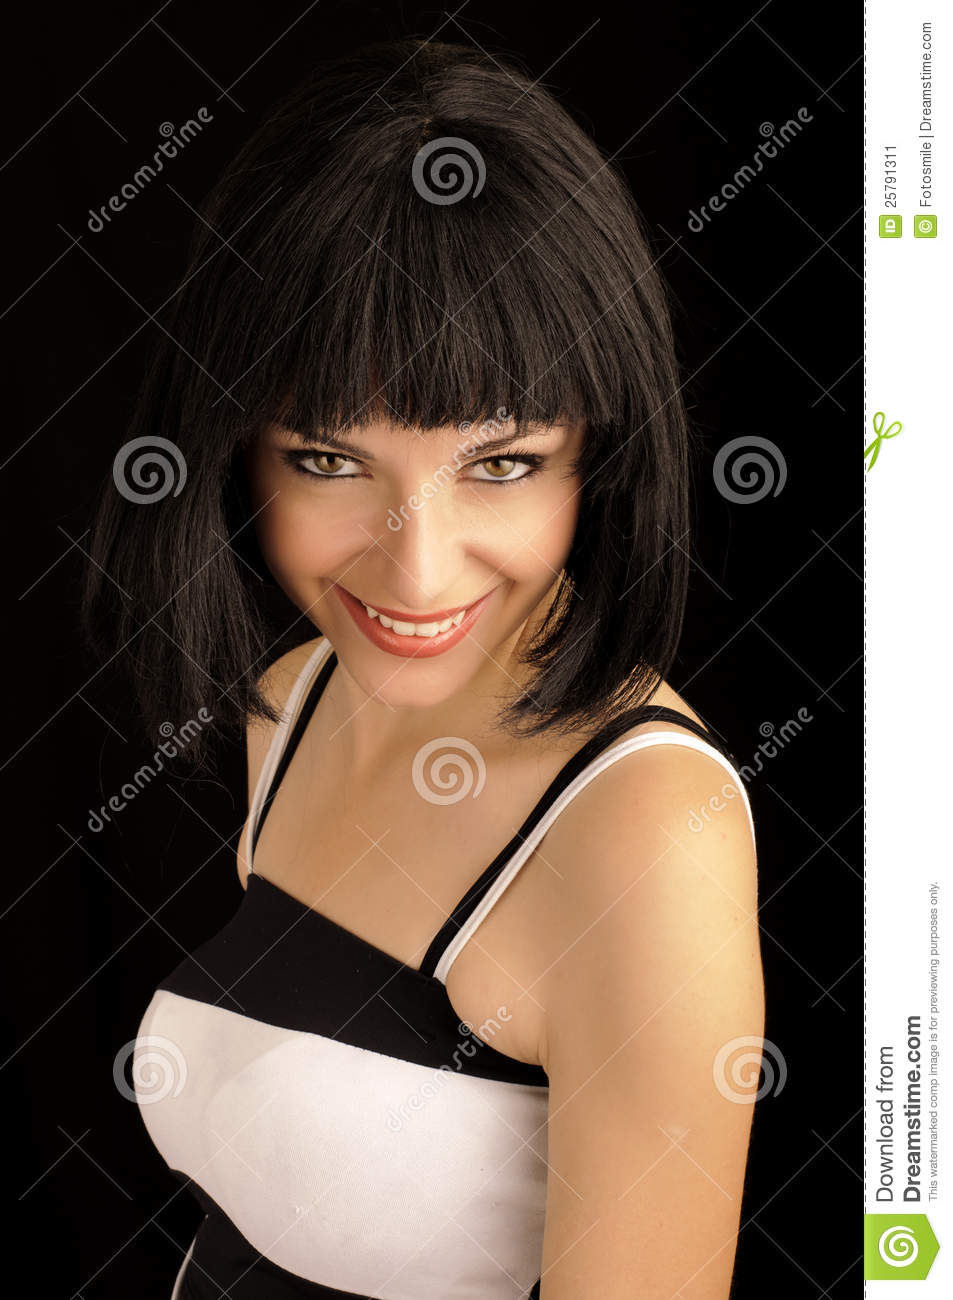 Beautiful Young Woman With Bob Hairstyle Stock Image - Image: 25791311